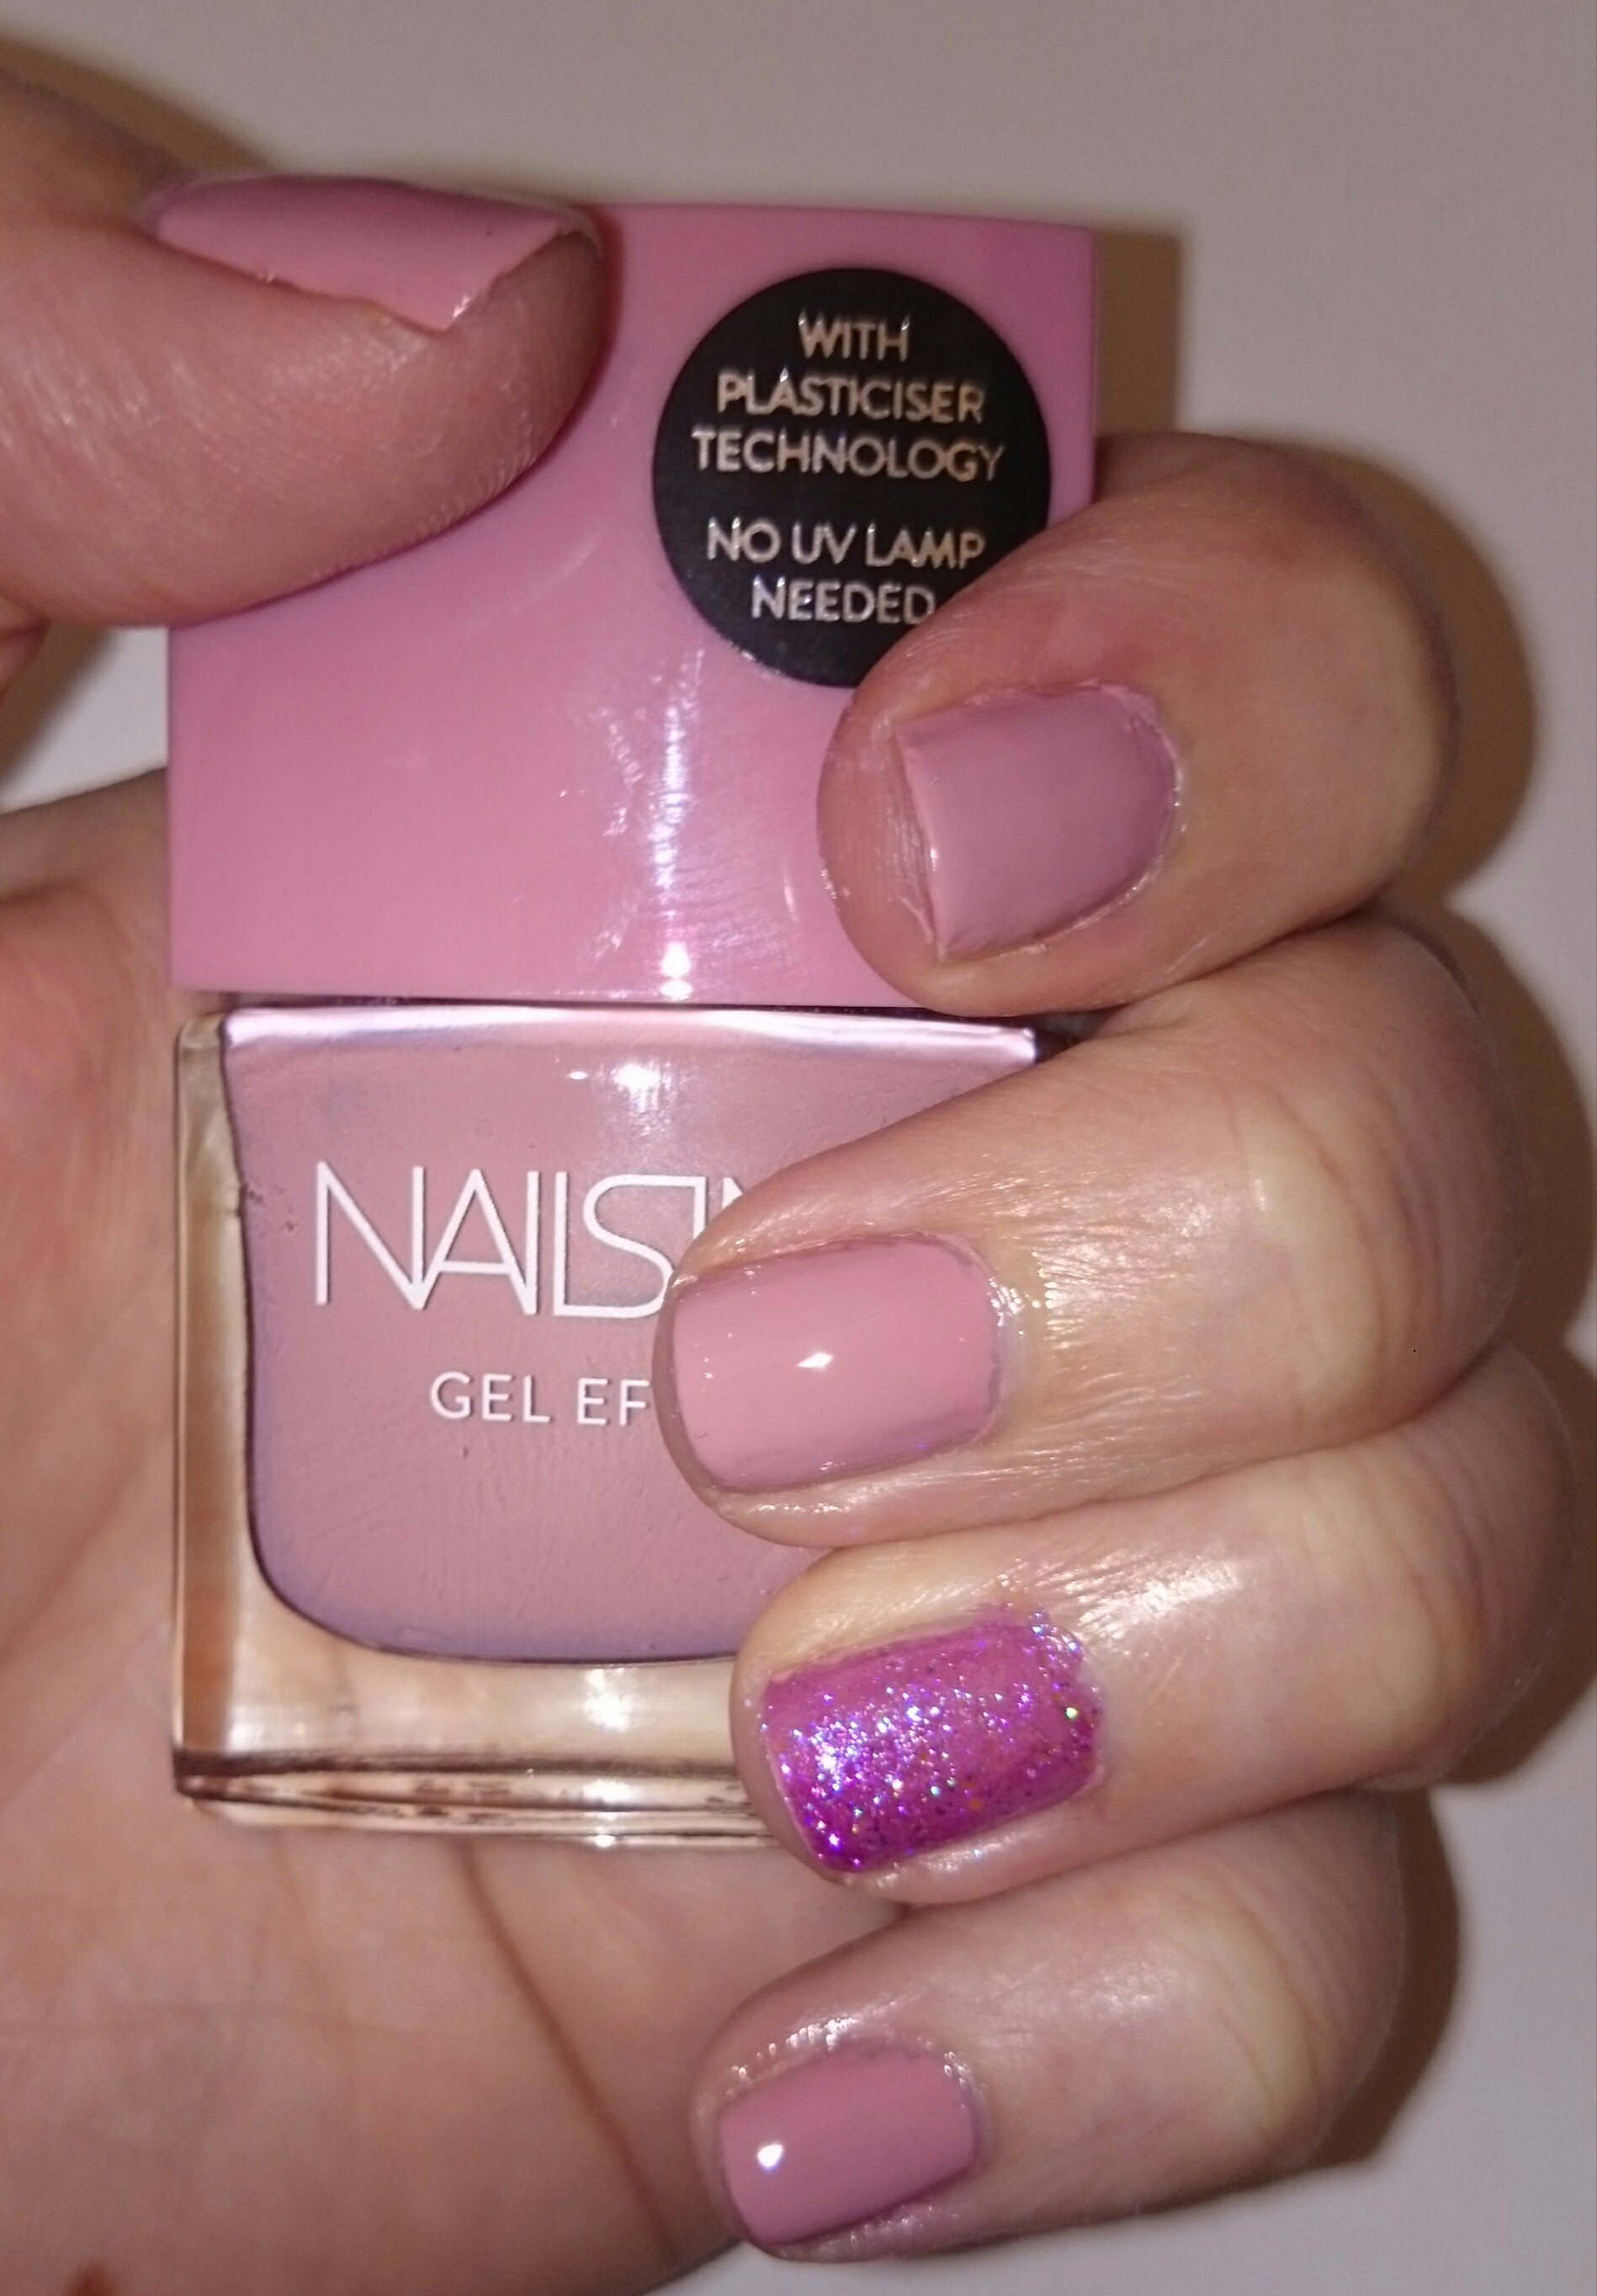 Nails of the Day (NOTD) - Nails Inc Uptown and Barry M Socialite ...